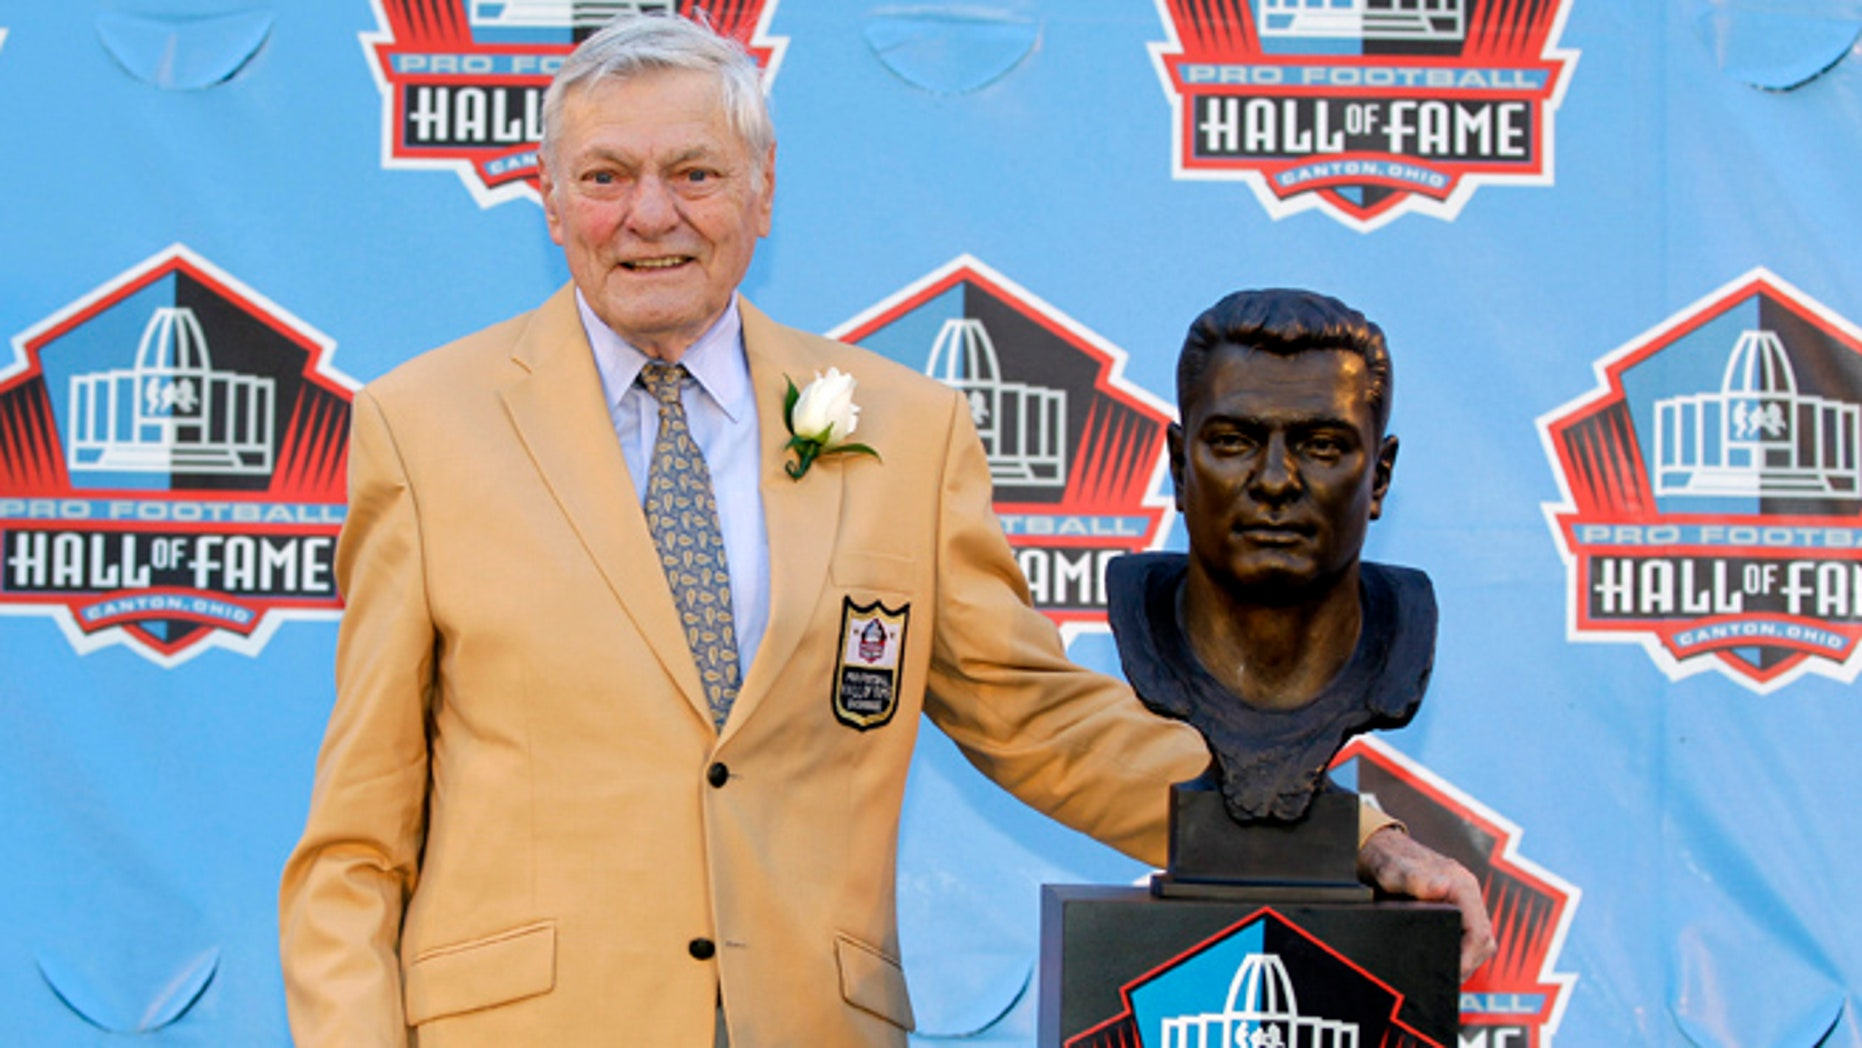 FILE- Int is Aug. 4, 2012, file photo, former NFL football player Jack Butler poses with a bust of himself during an induction ceremony at the Pro Football Hall of Fame in Canton, Ohio. Butler died Saturday morning, may 11, 2013, following a lengthy battle with a staph infection, his son John Butler said. He was 85. (AP Photo/Gene J. Puskar, File)